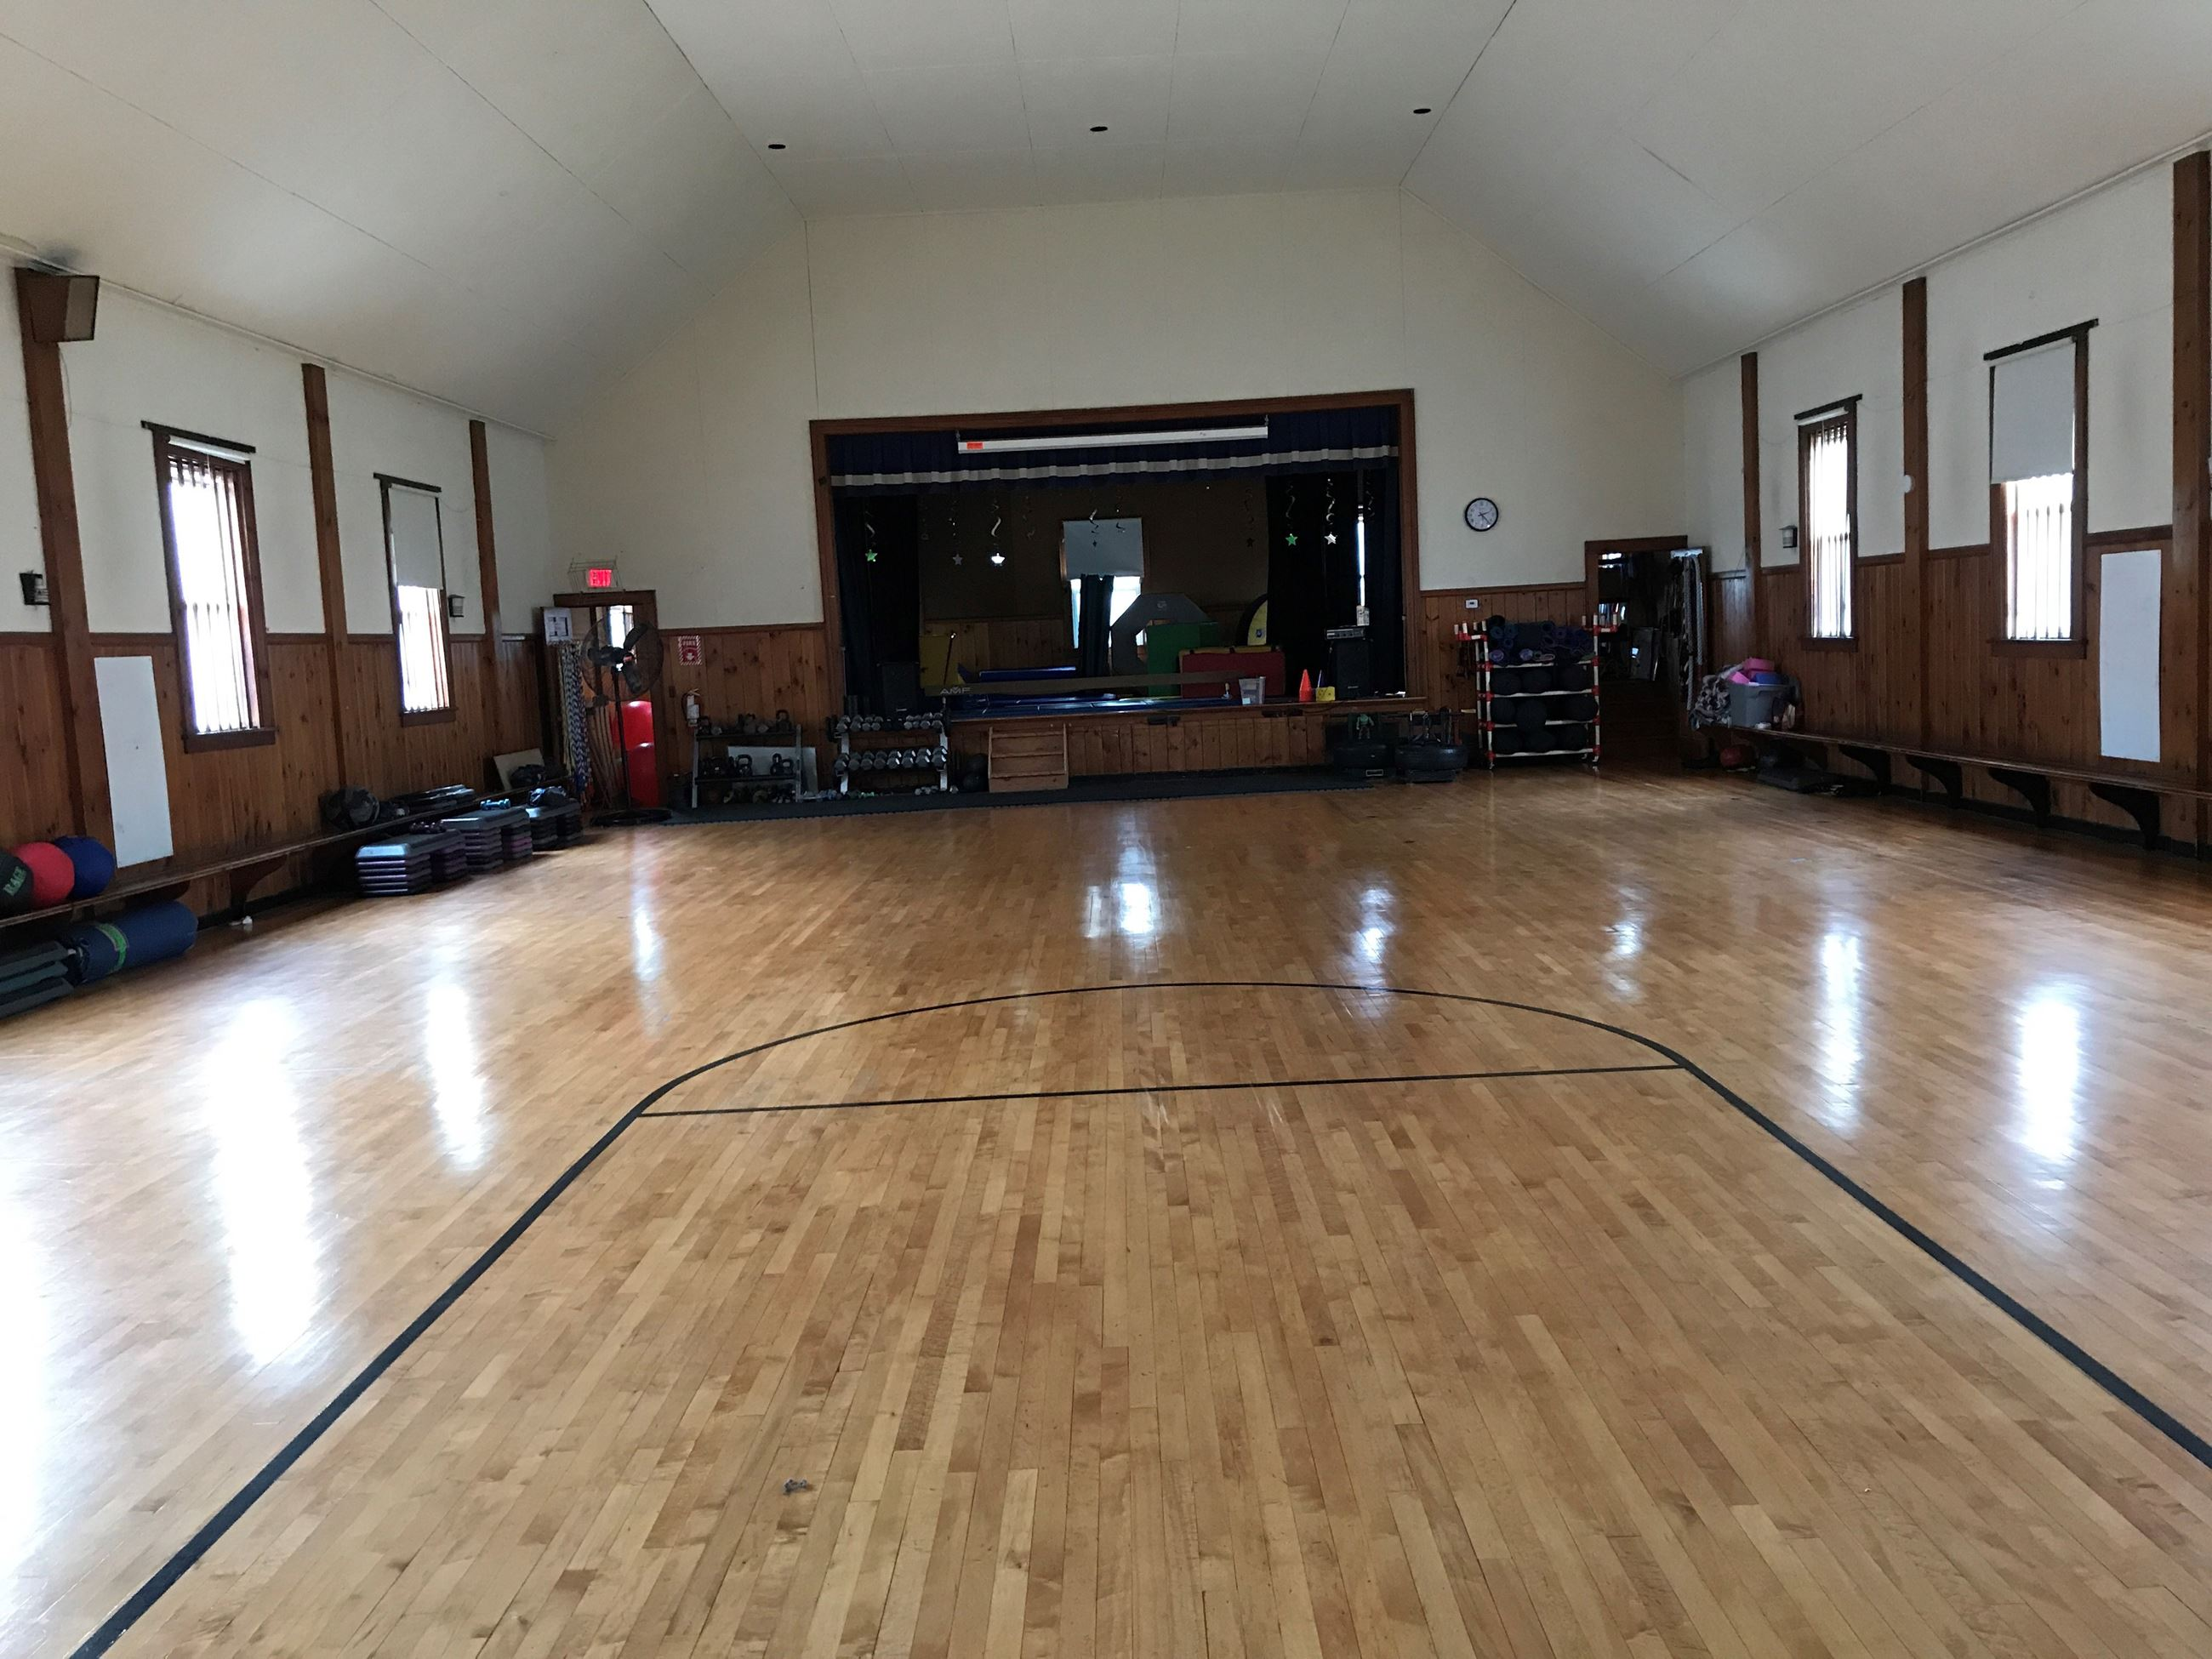 Recreation Center Hall Stage